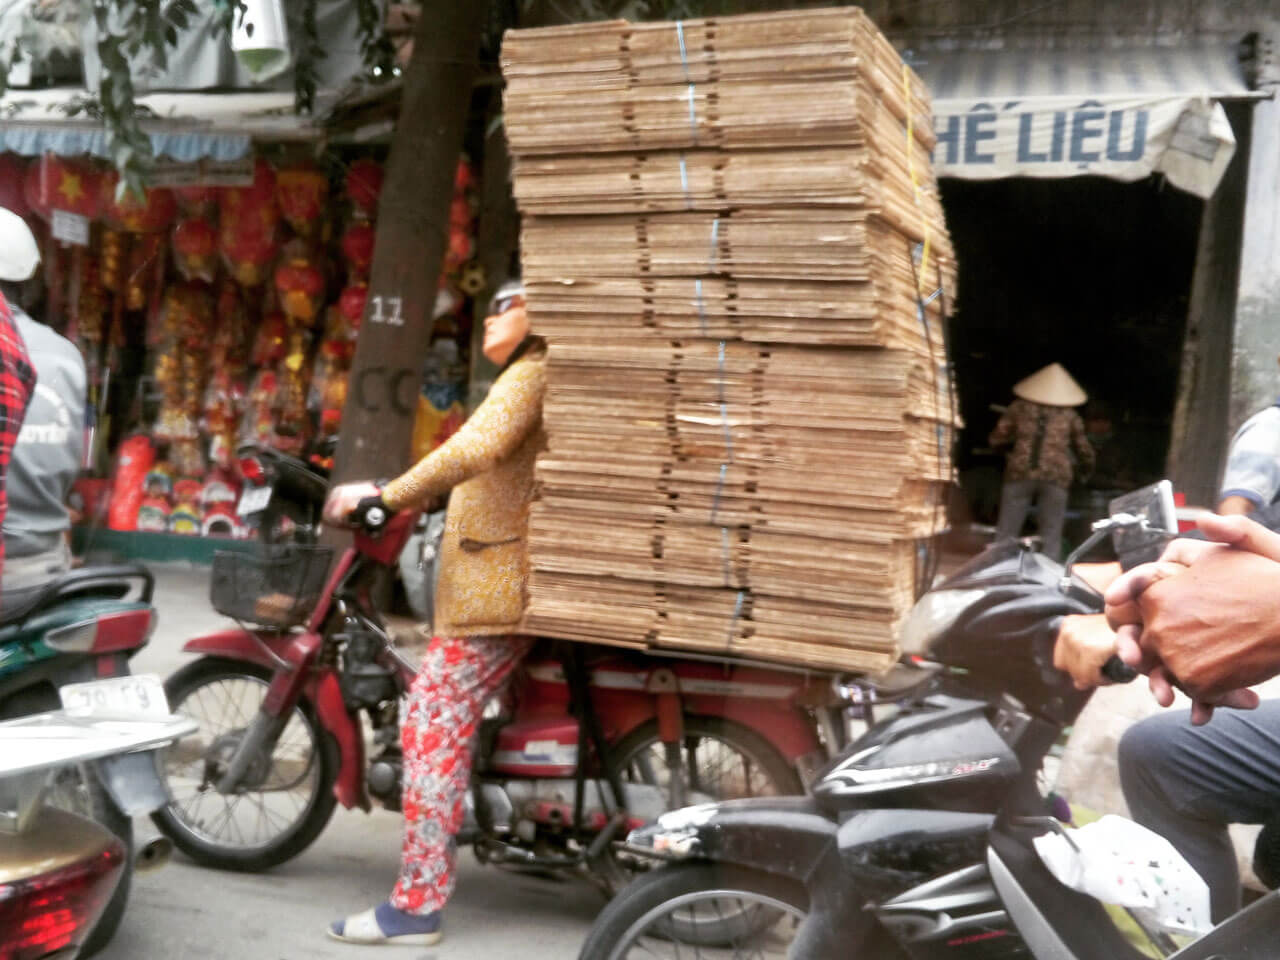 Vietnamese woman on a bike with a bundle of boxes behind her back